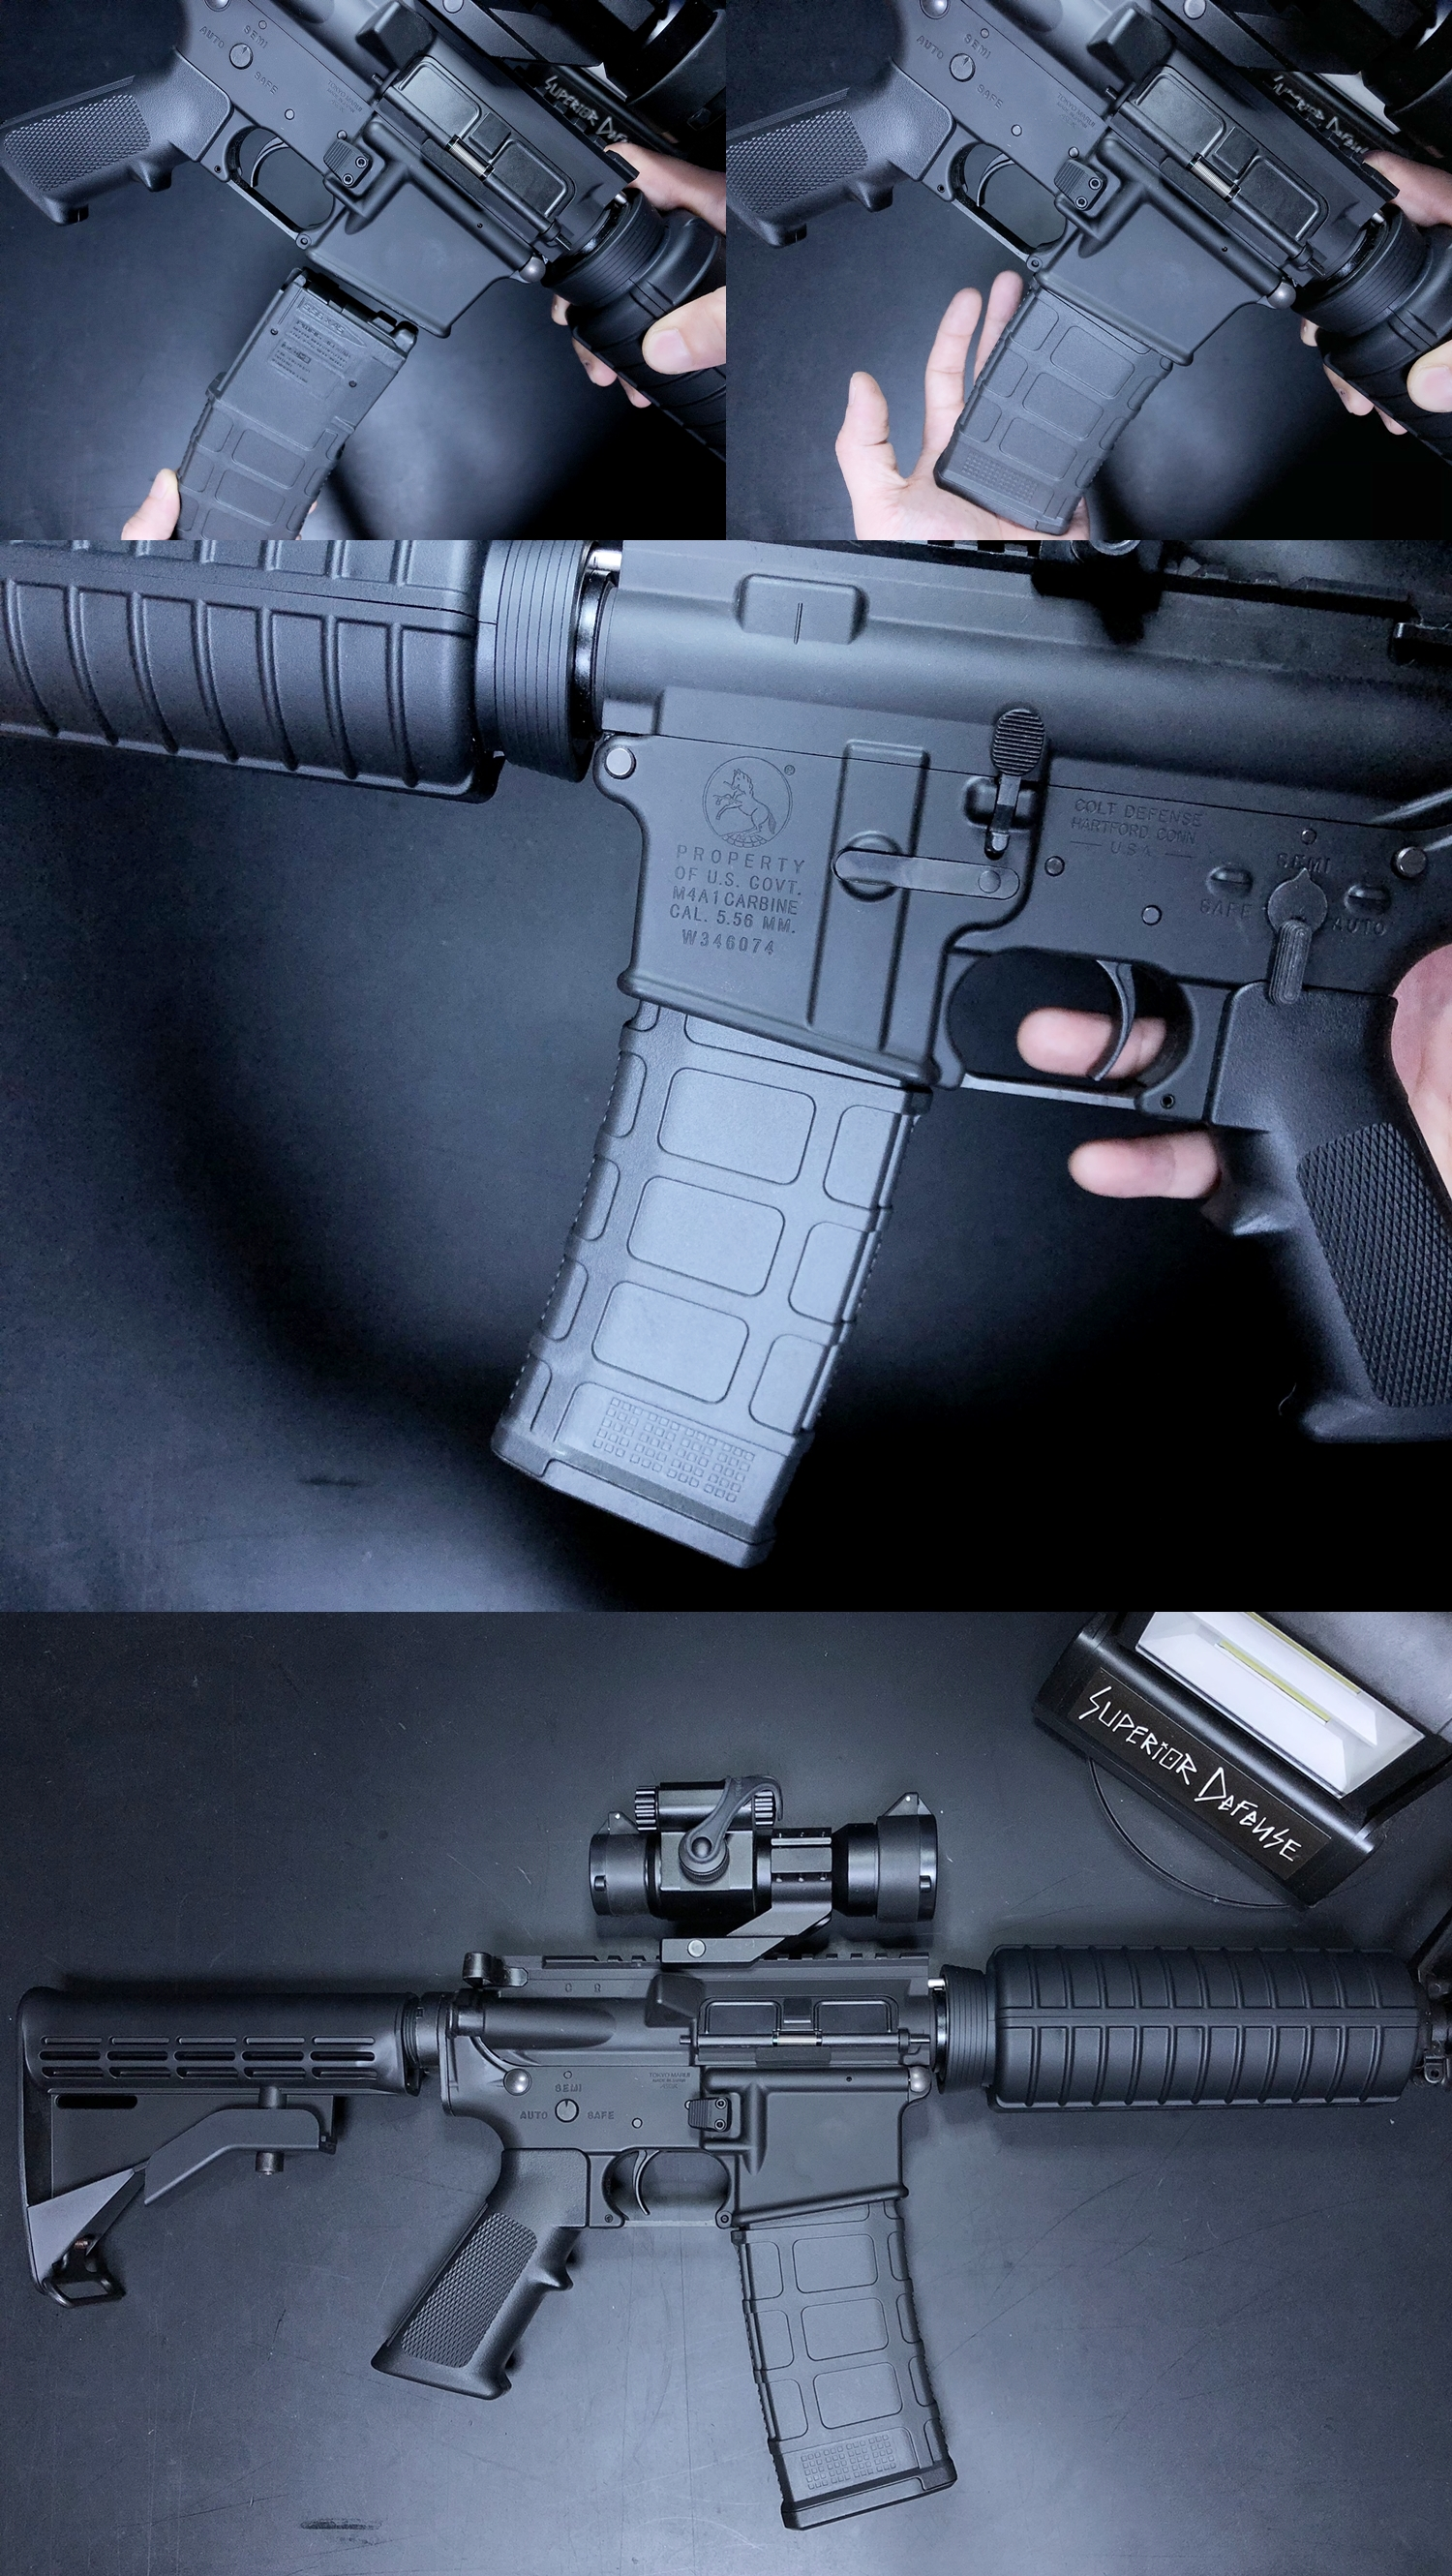 12 MAGPUL TYPE DYTAC ENHANCED AR MAGAZINE RELEASE & ACE 1 ARMS P-MAG FOR MWS GBB!! DEVILSIXさんからお荷物が着弾しました!! HILOG ORIGINAL 3D マグリリースボタン簡易的交換ツール制作!! 購入 開封 取付 検証